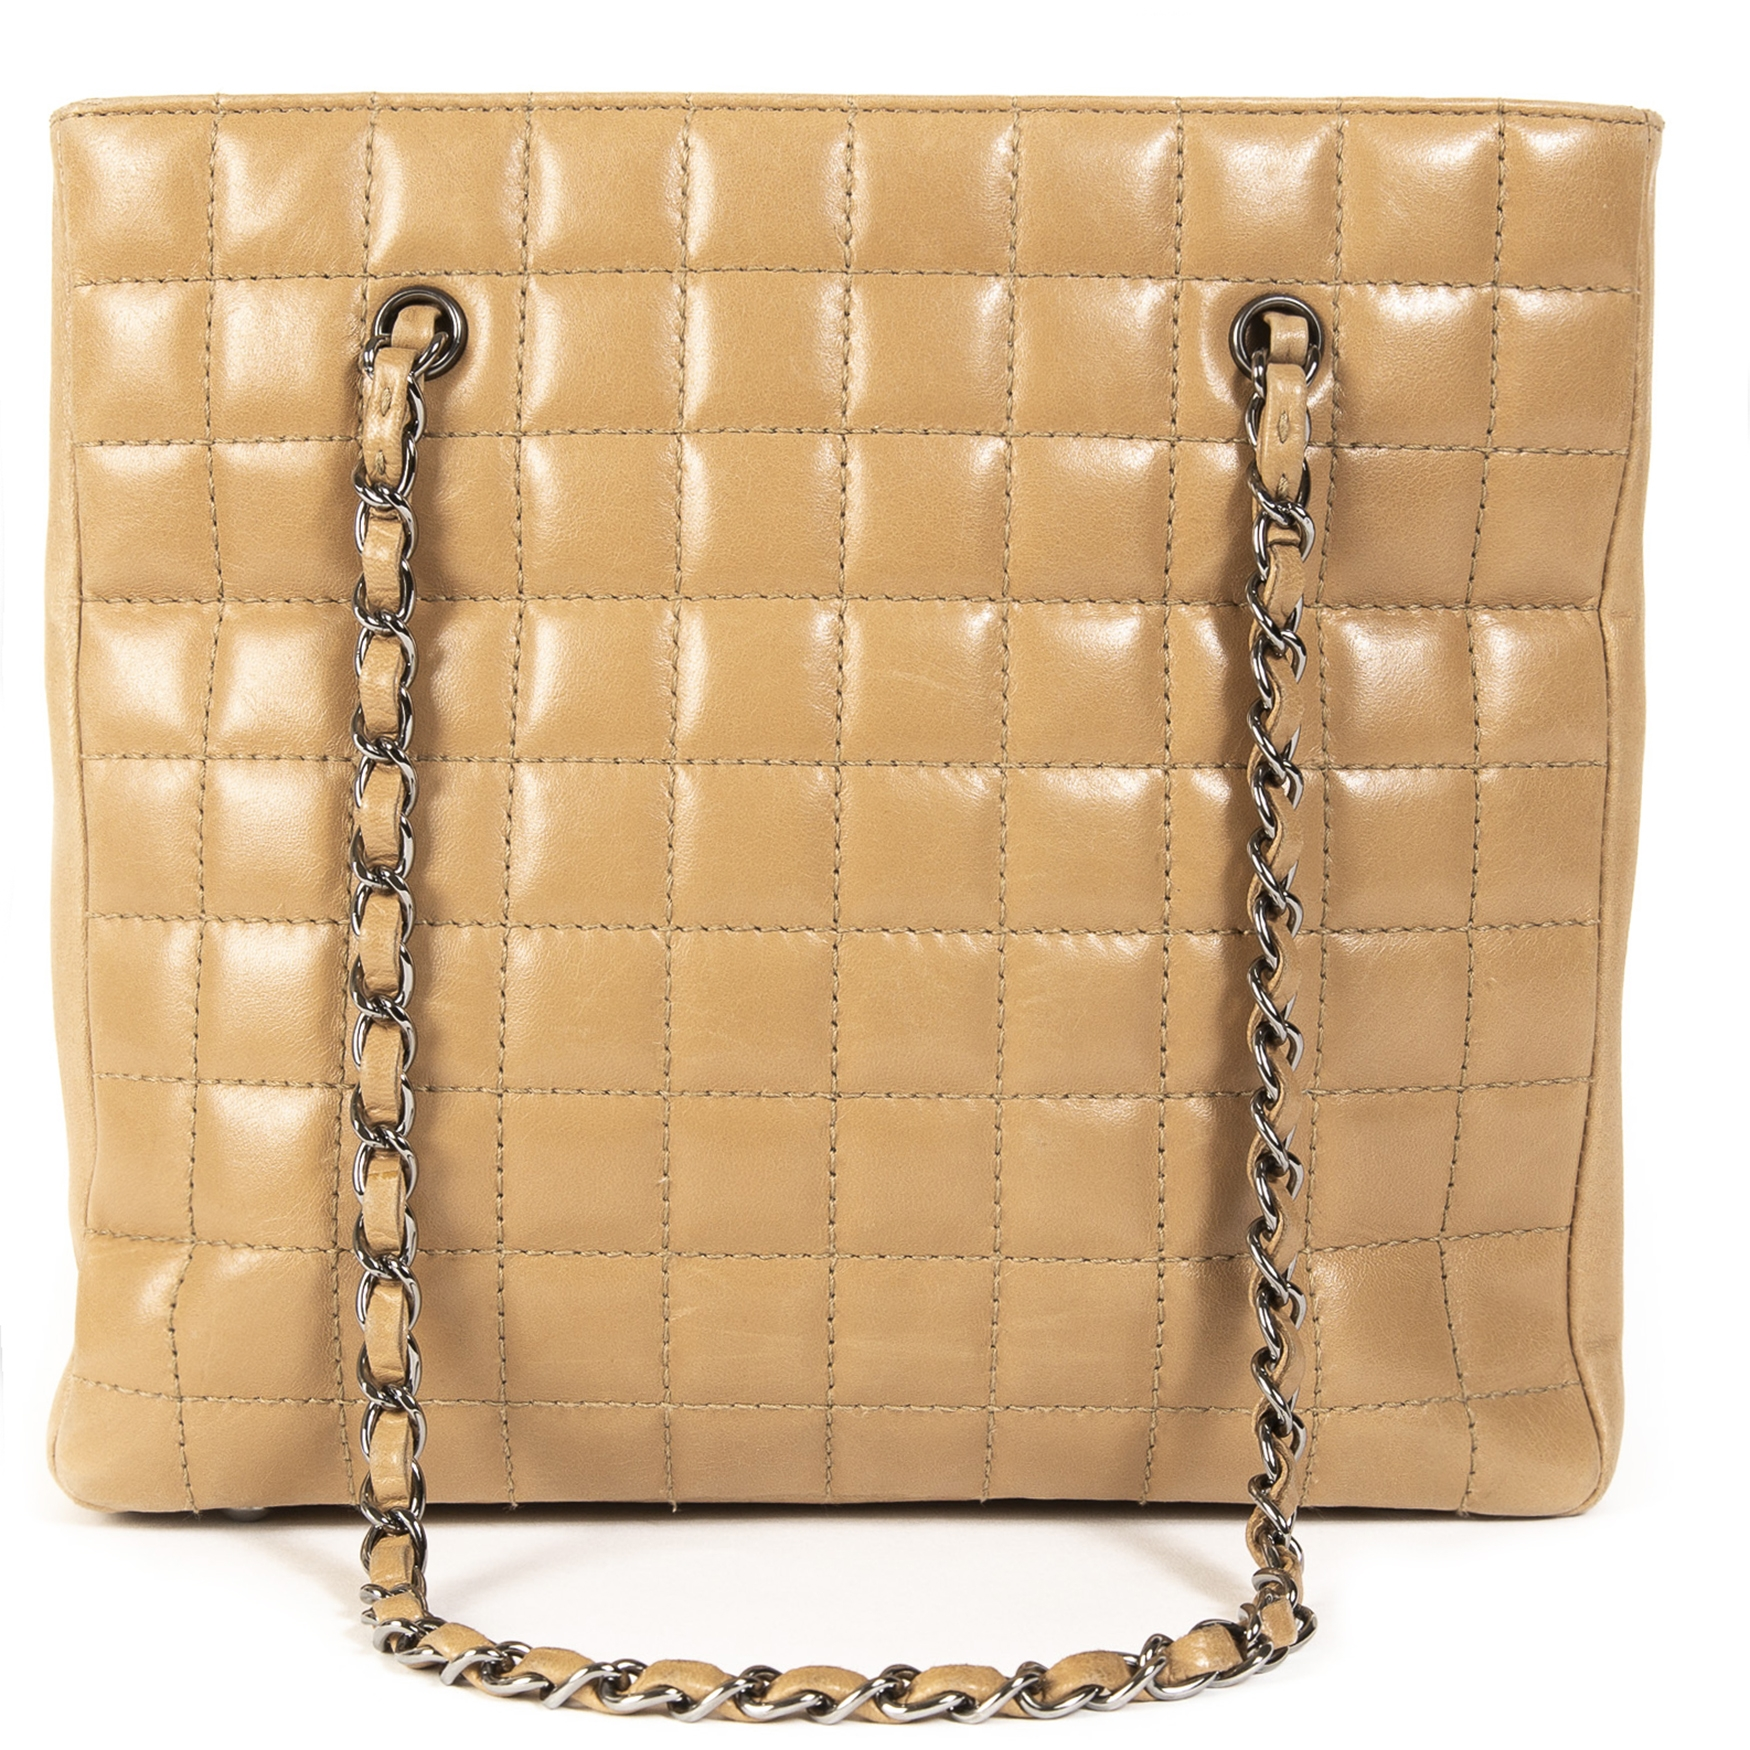 d677358486d0 Labellov Just In ○ Buy and Sell Authentic Luxury